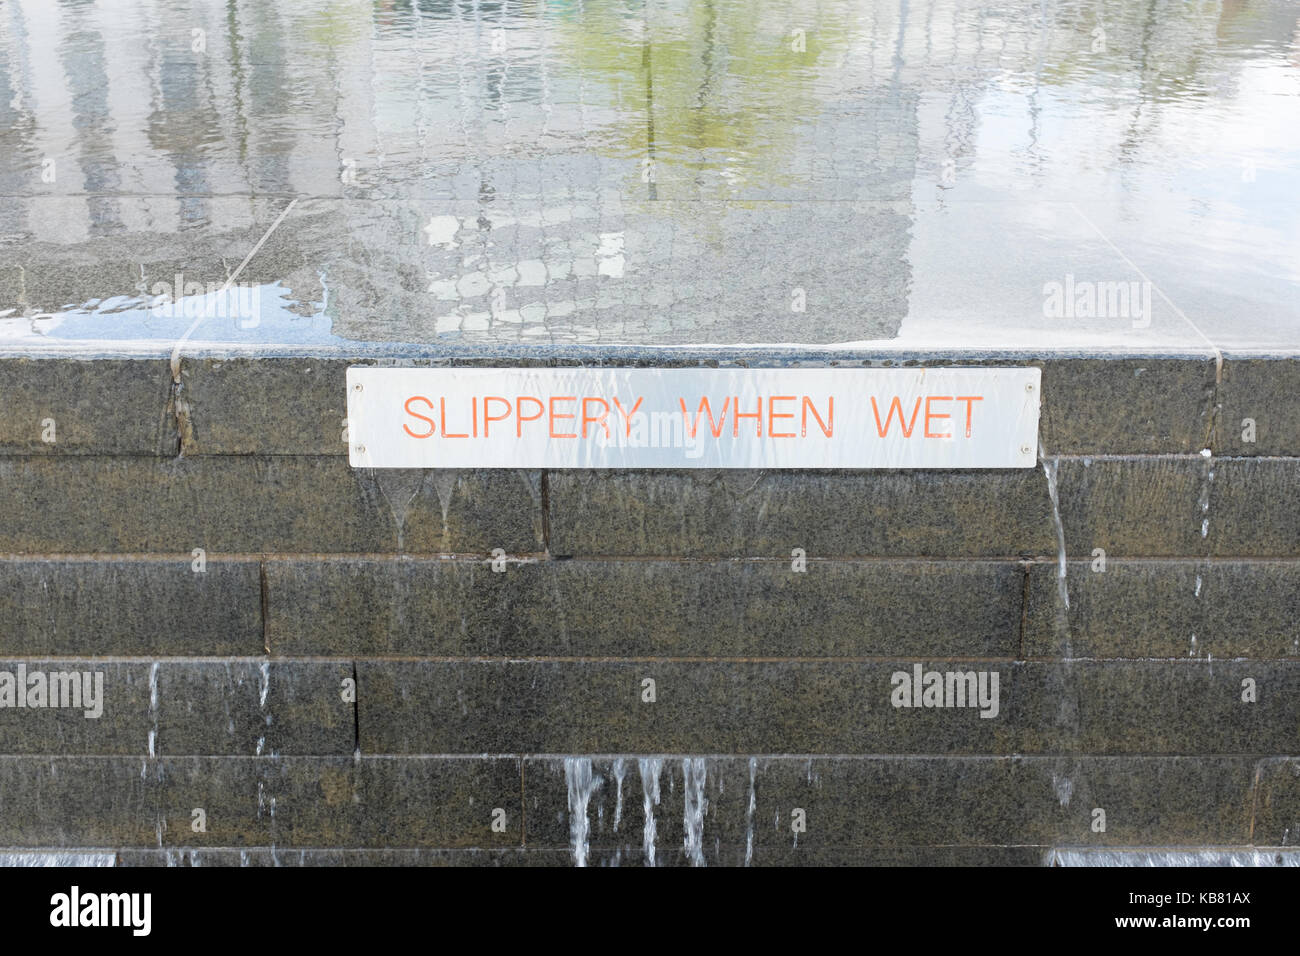 Sign on a water feature in Old Market Square, Nottingham saying slippery when wet - Stock Image